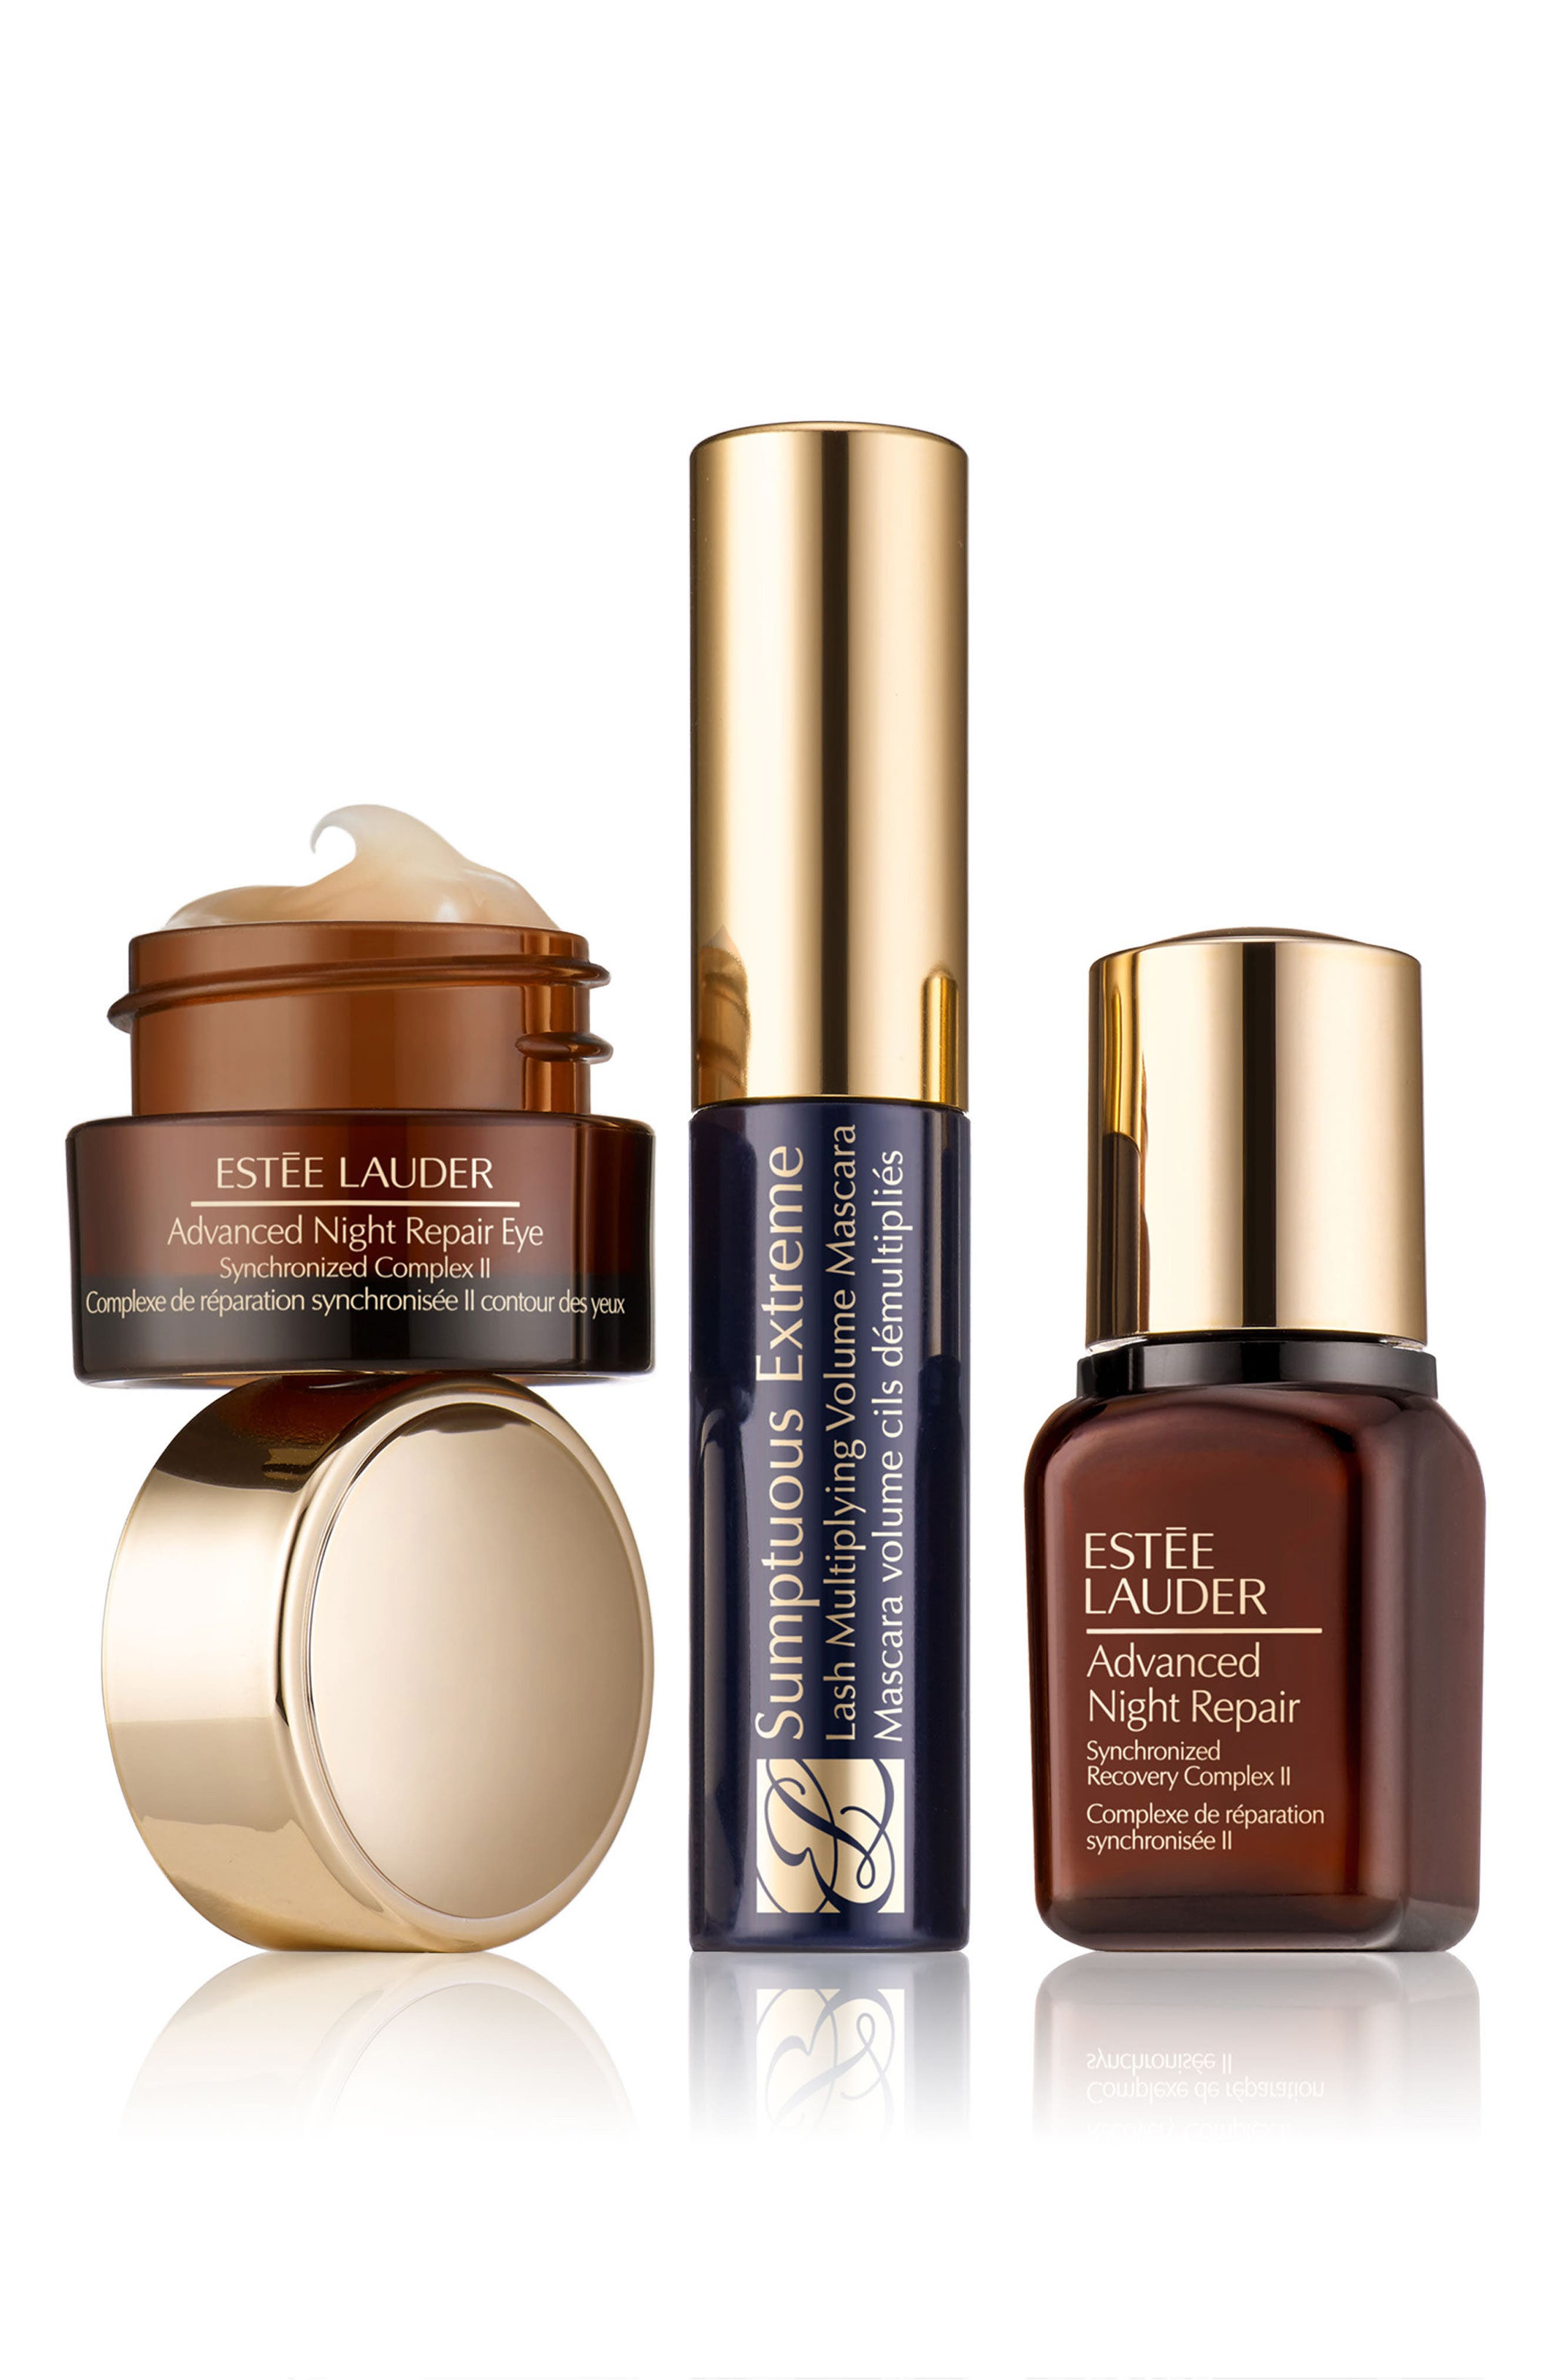 Estée Lauder Beautiful Eyes Repair + Renew Set ($88 Value)